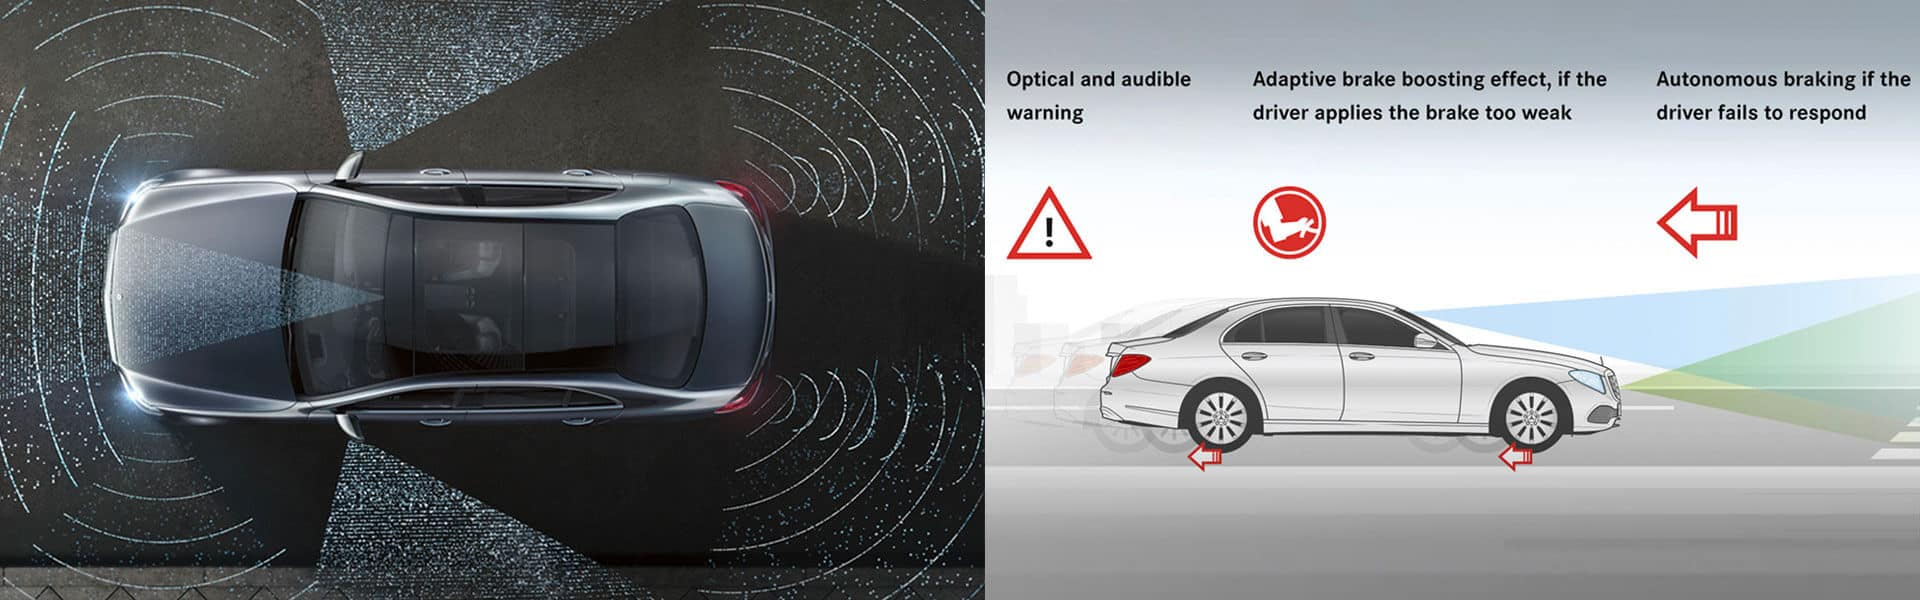 Mercedes Benz E 300 Attention Assist and Crowdwind Assist